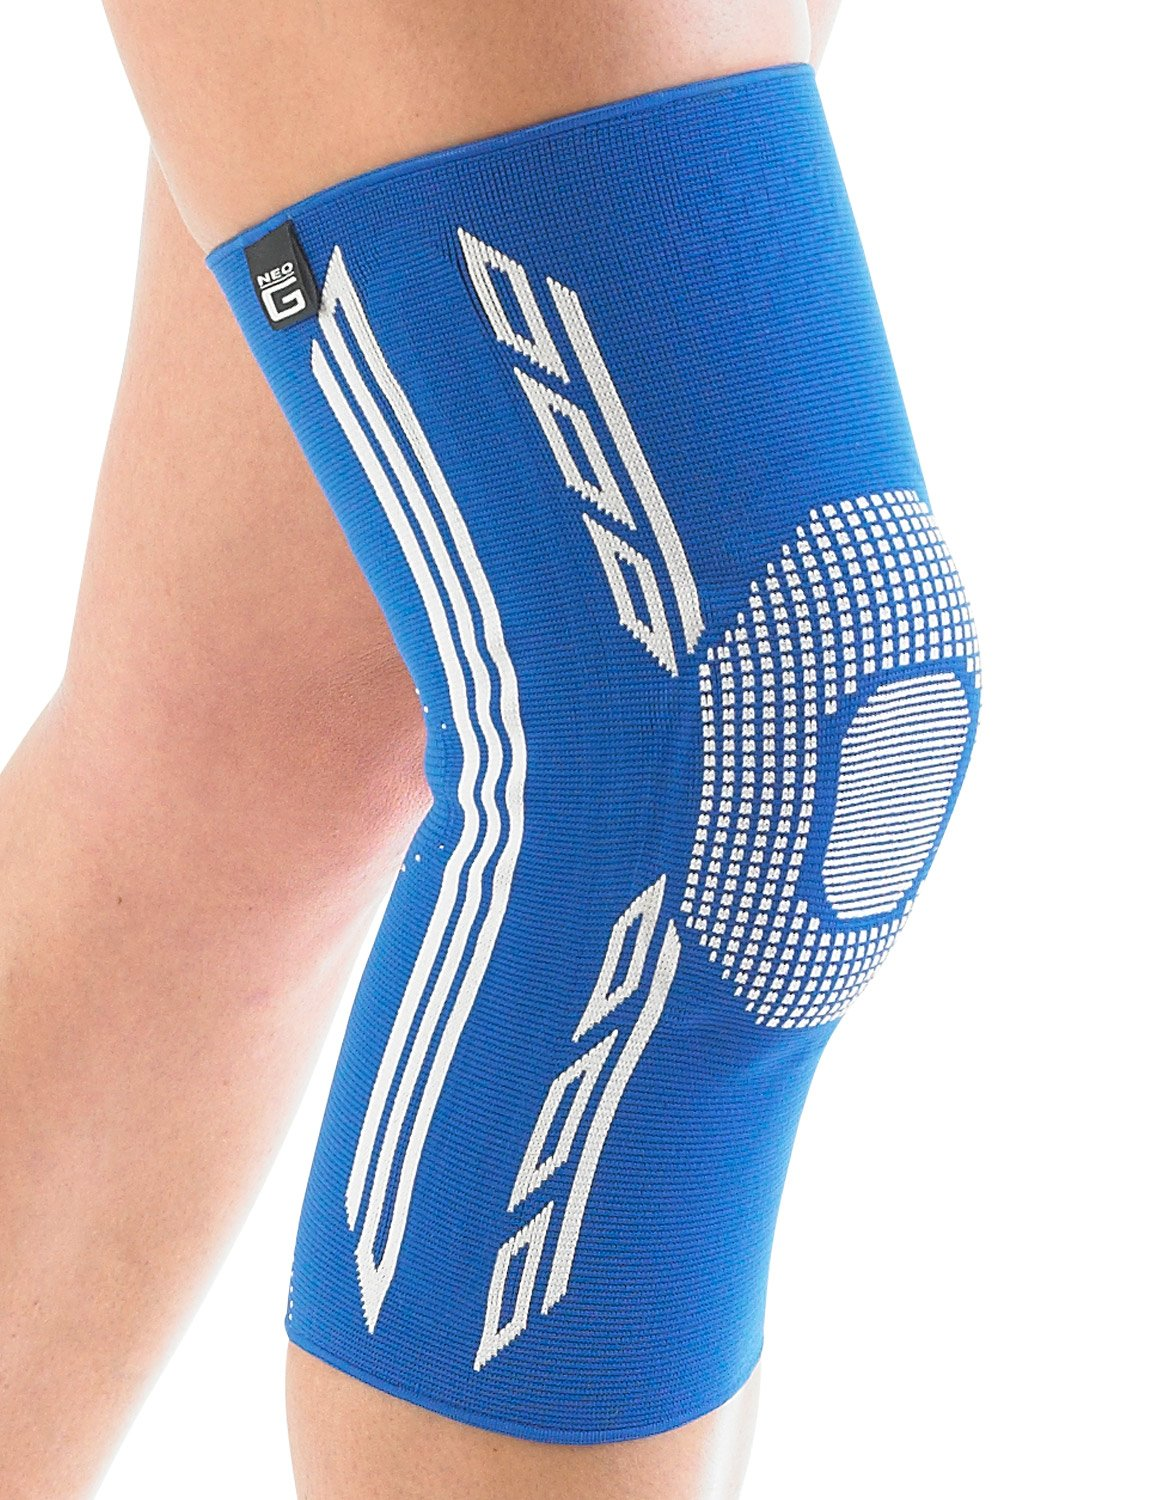 safety Neo G Knee Support - for Sprains Dedication Joint Strains Arthritis Pain